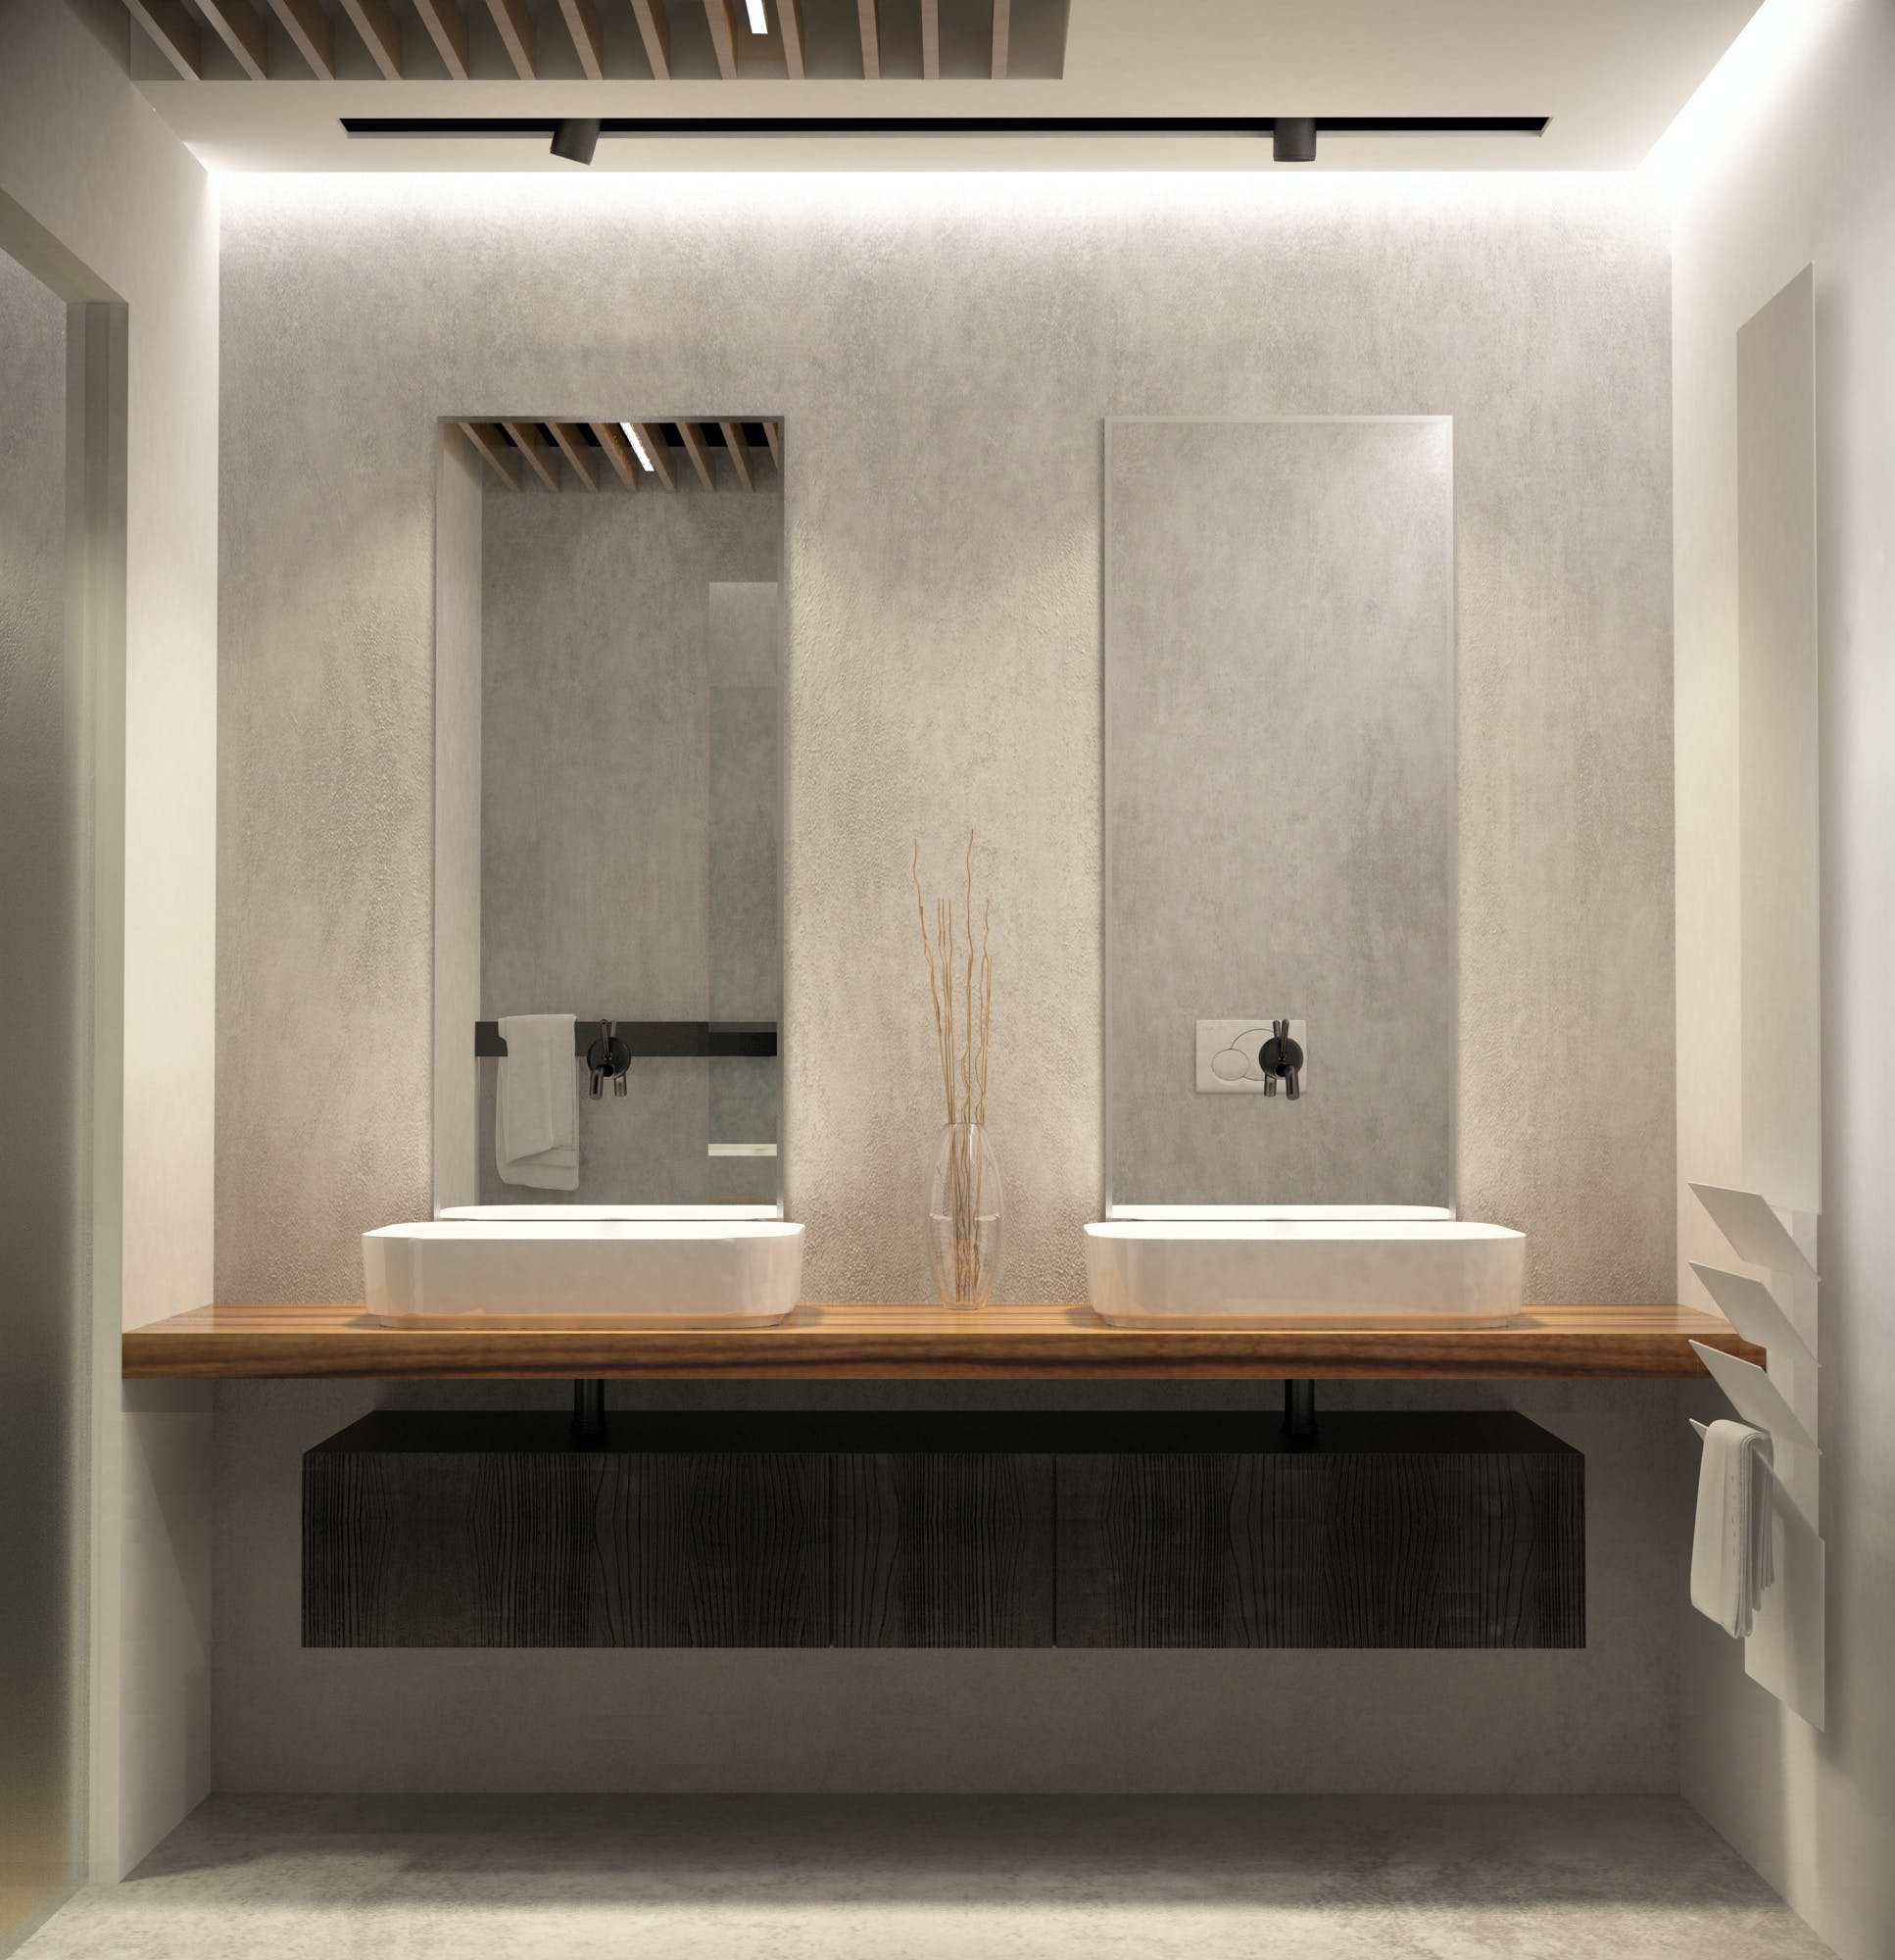 Interior design bathroom luca conocchia archinect Bathroom design jobs london